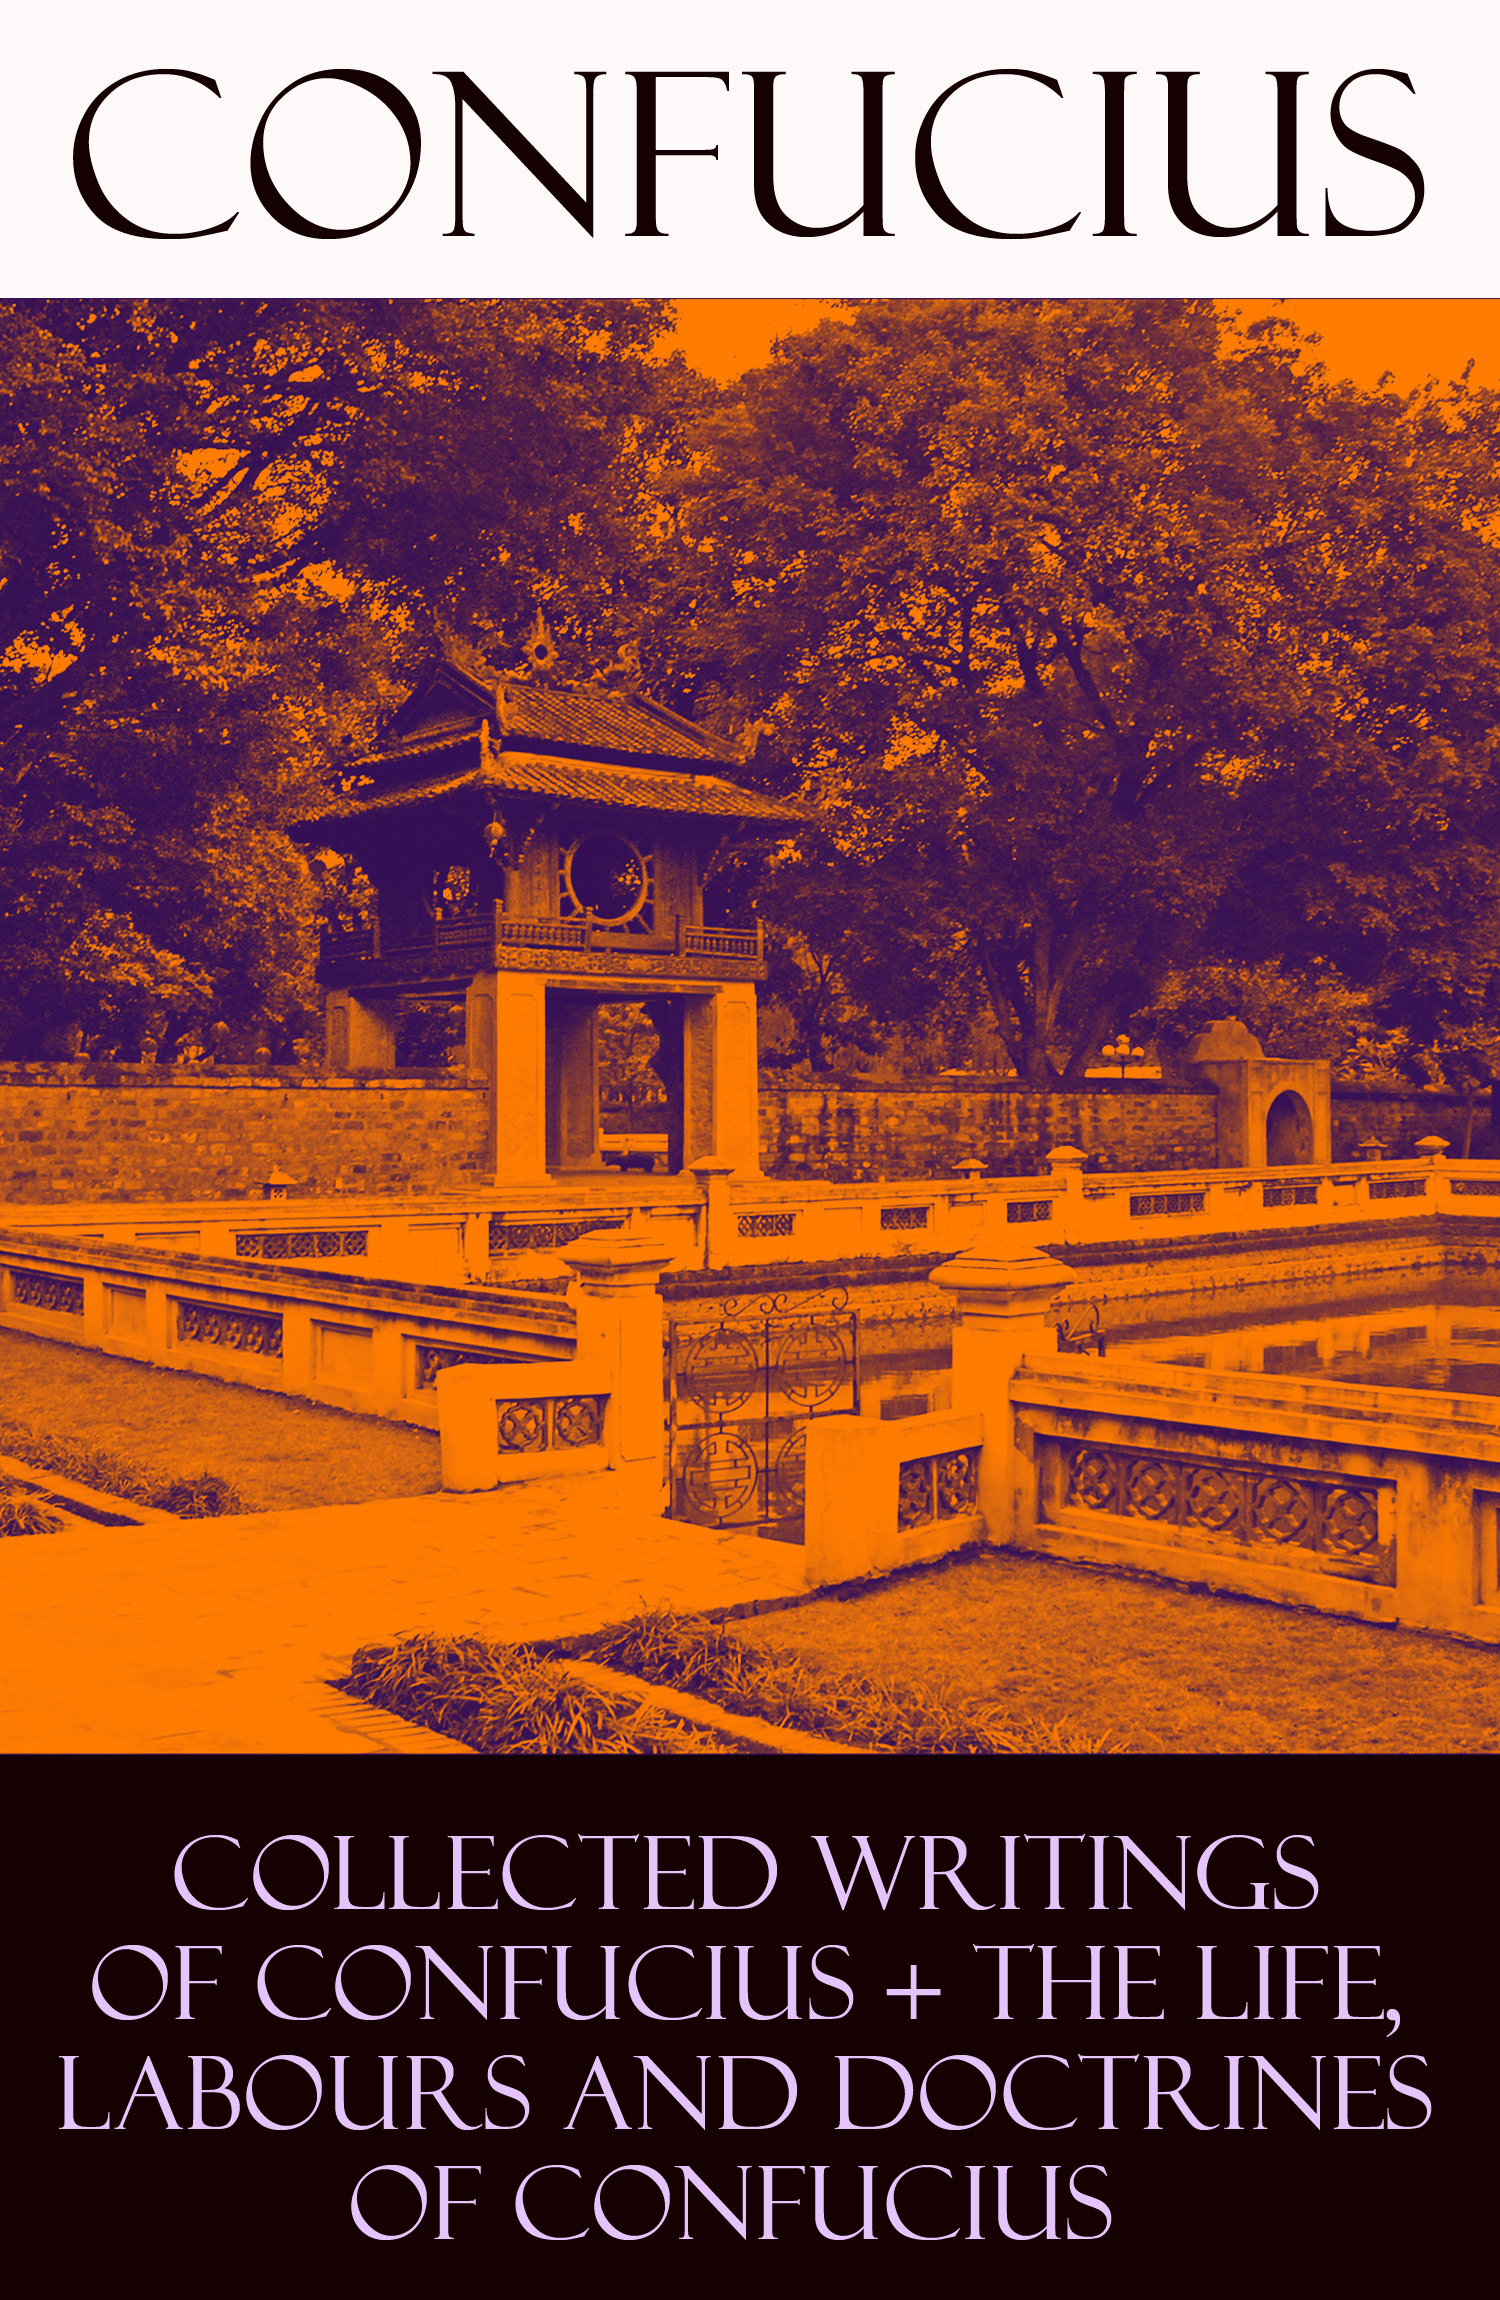 Collected Writings of Confucius + The Life, Labours and Doctrines of Confucius (6 books in one volume)